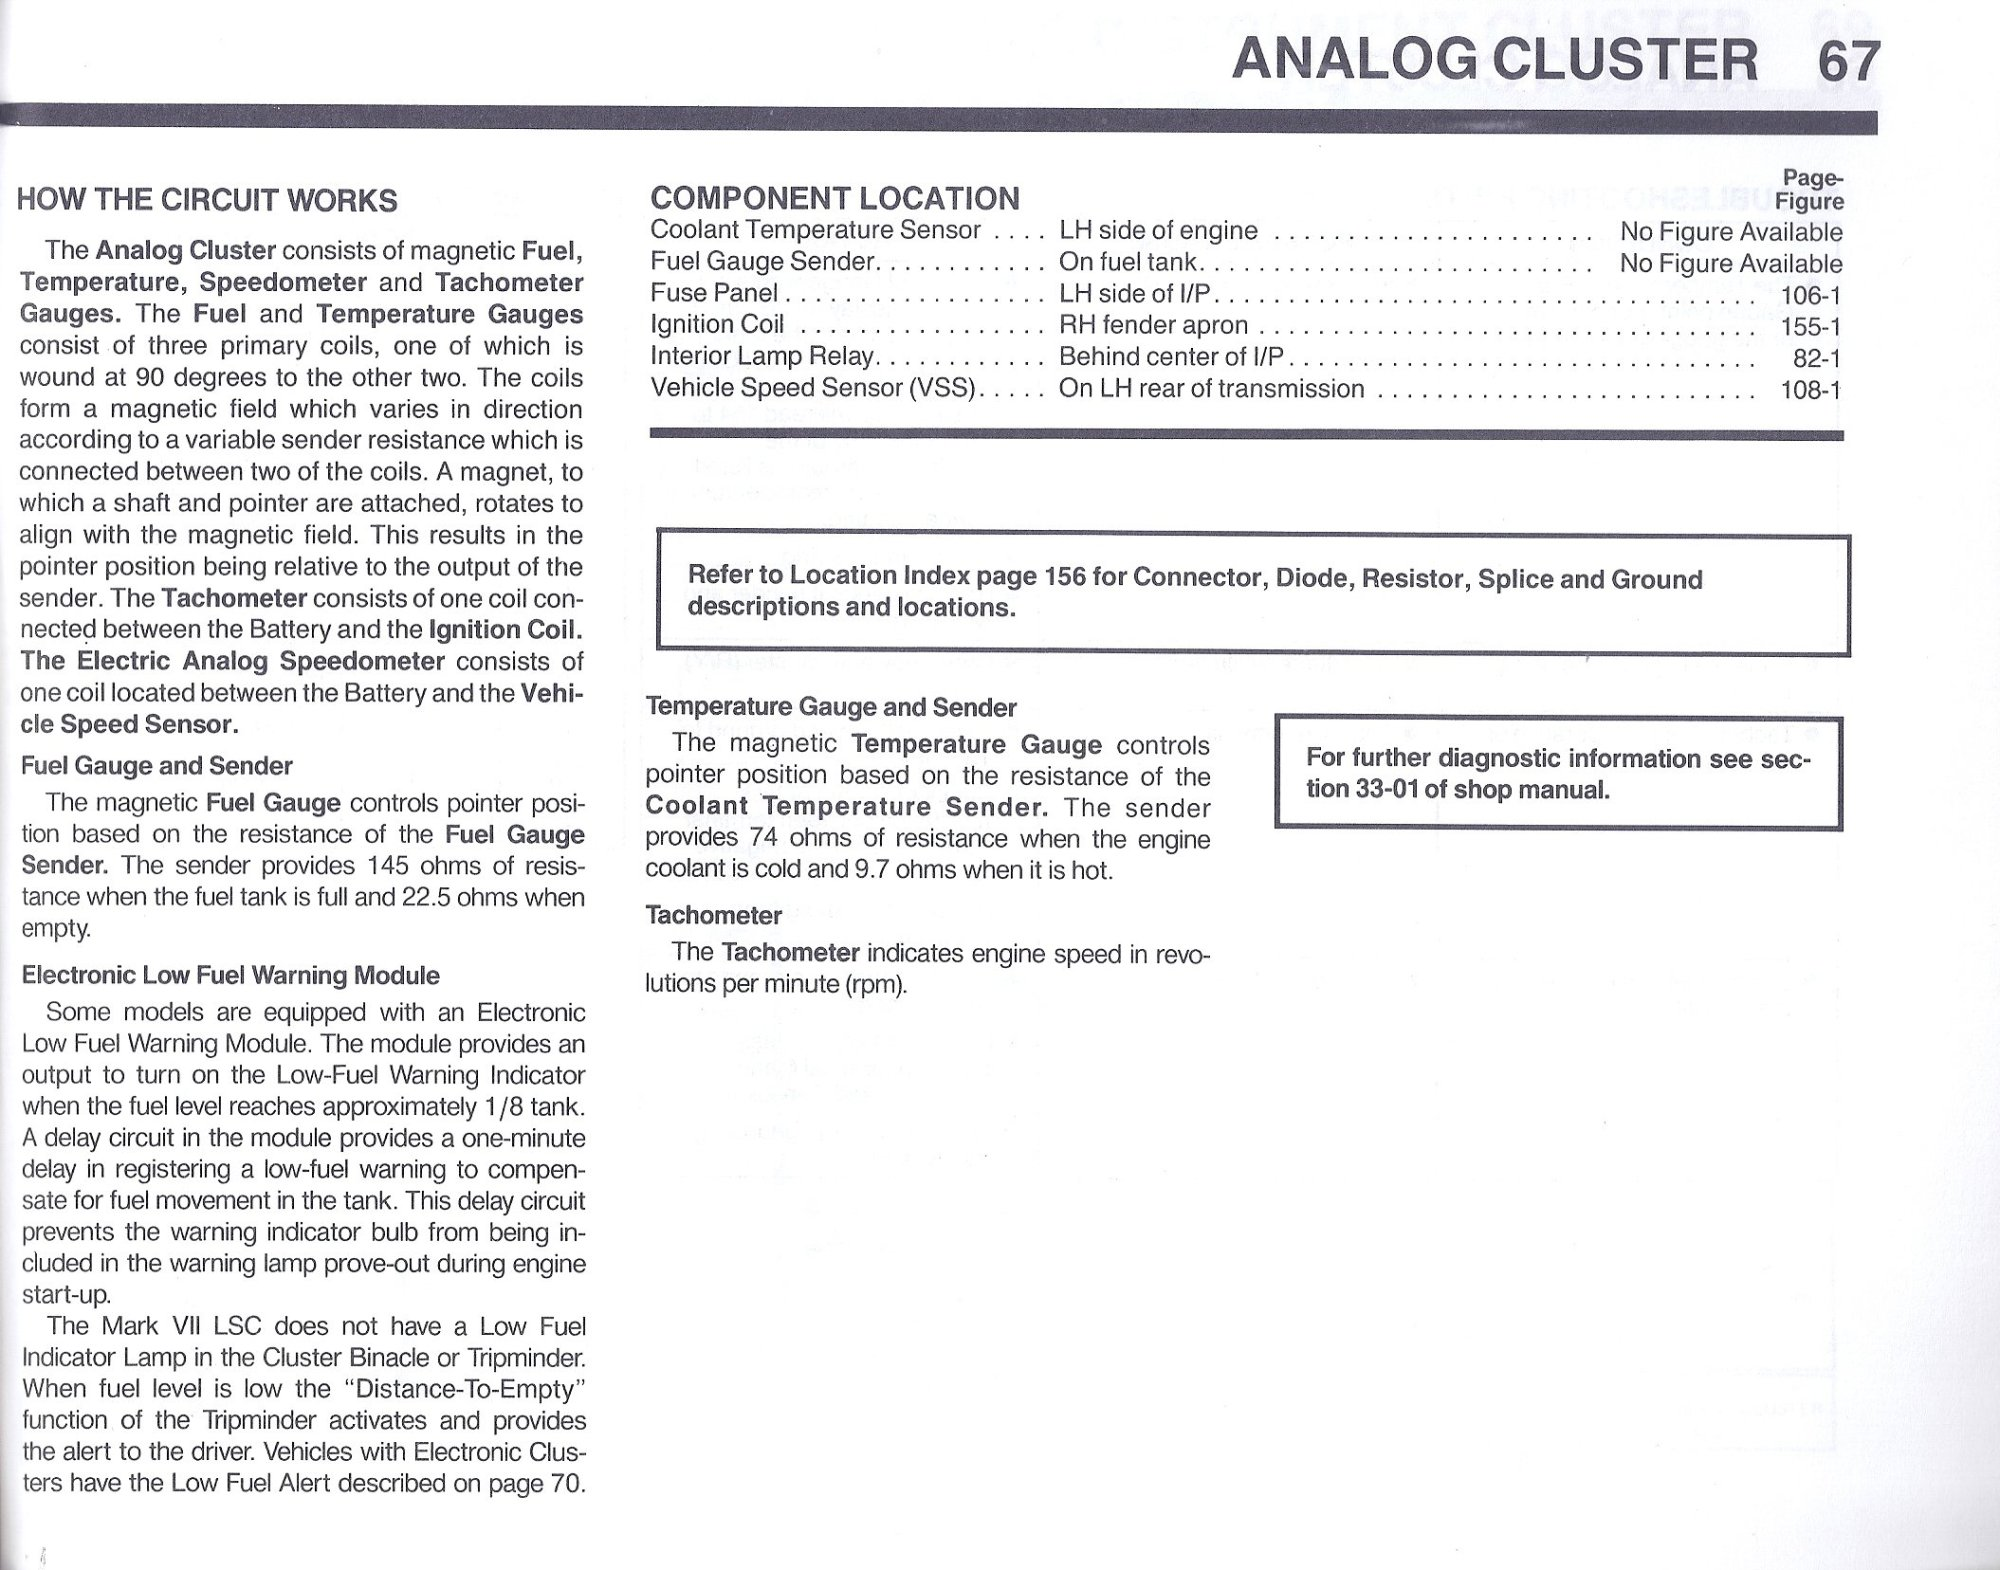 hight resolution of index of gallery albums 1989 lincoln mark vii evtm analog cluster rh thelincolnmarkviiclub org 1990 lincoln lincoln mark 7 fuse box